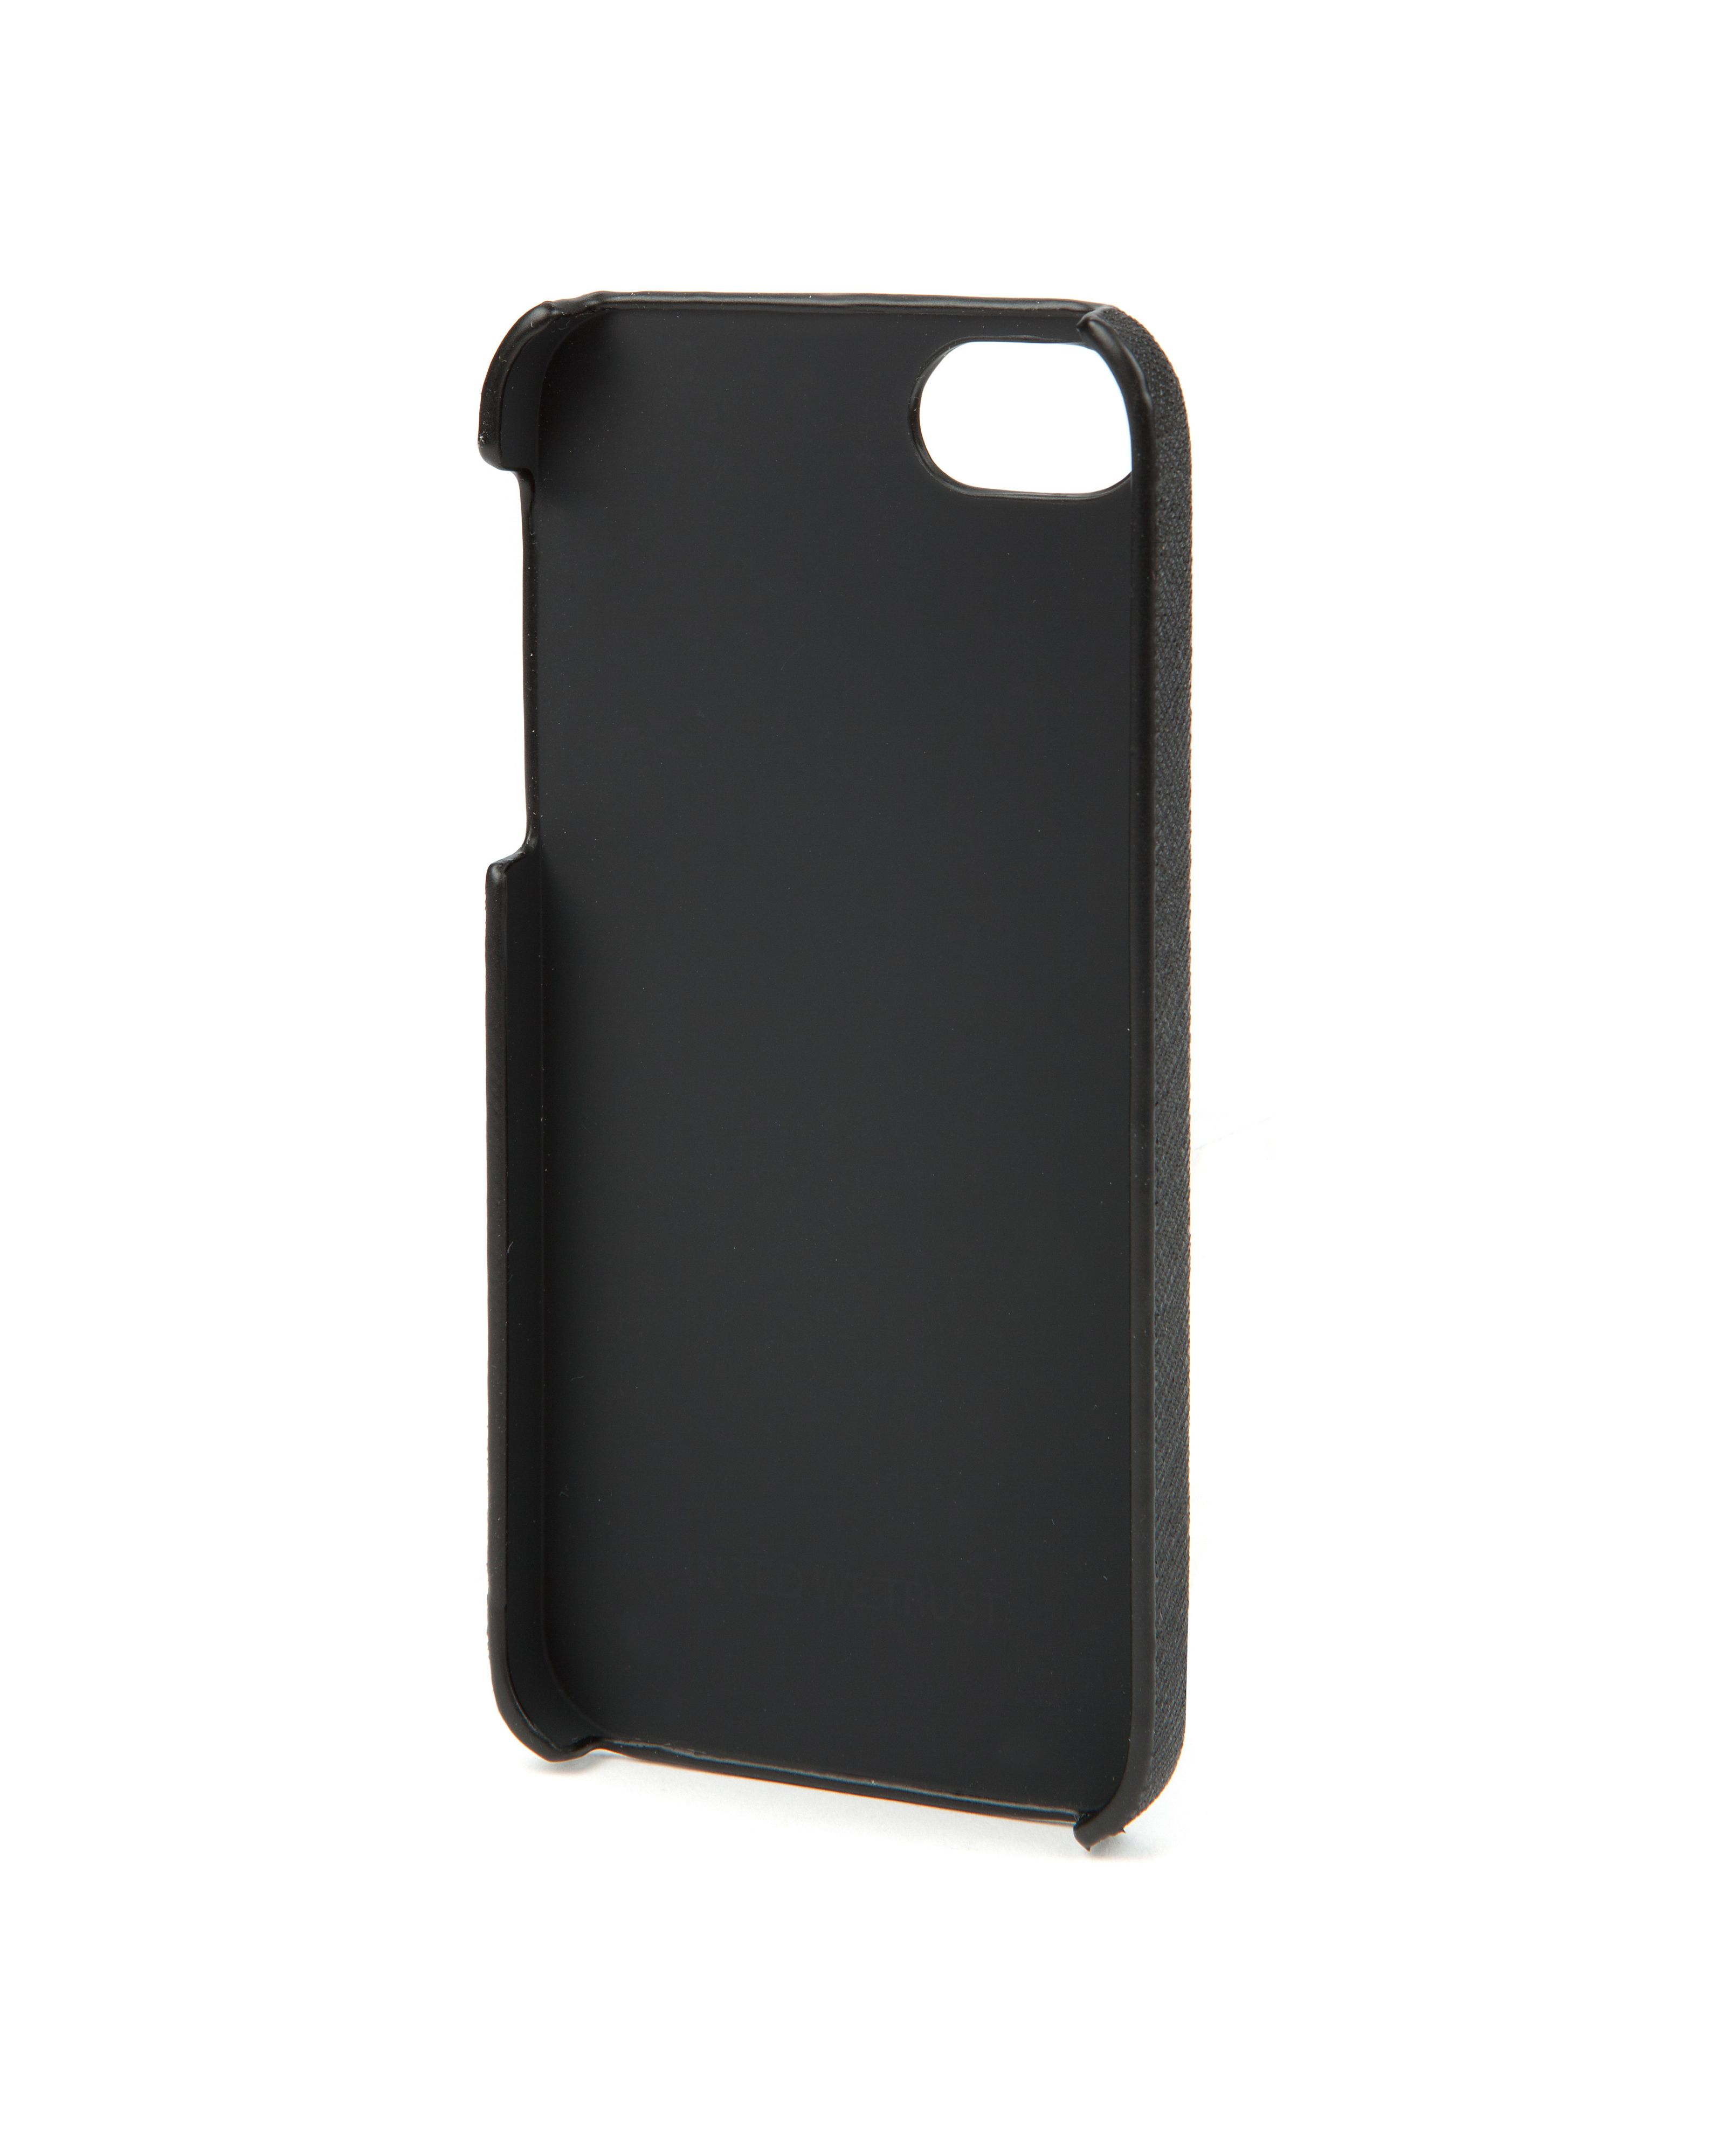 Bryoni crosshatch iphone case